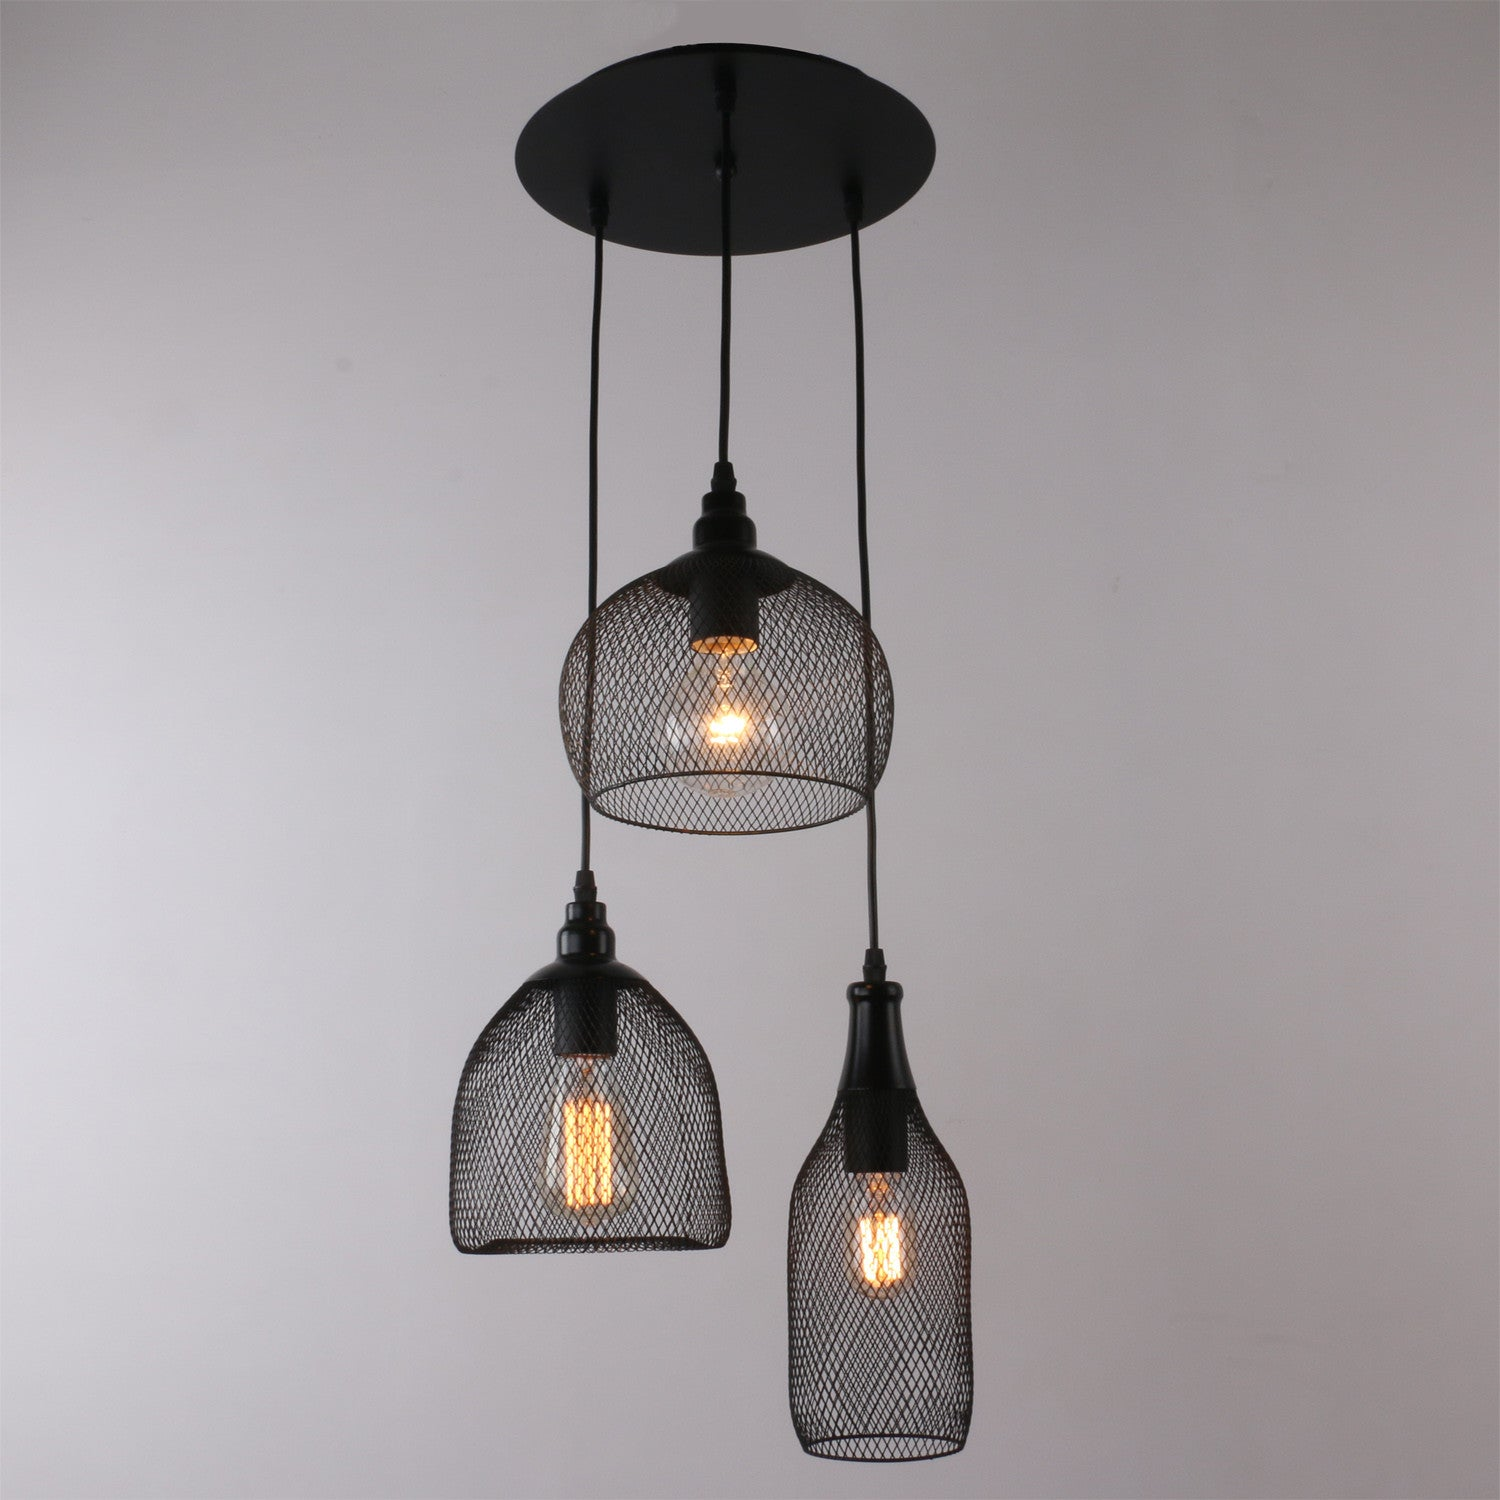 natural multi info light products lighting inch inspirations pendant grande